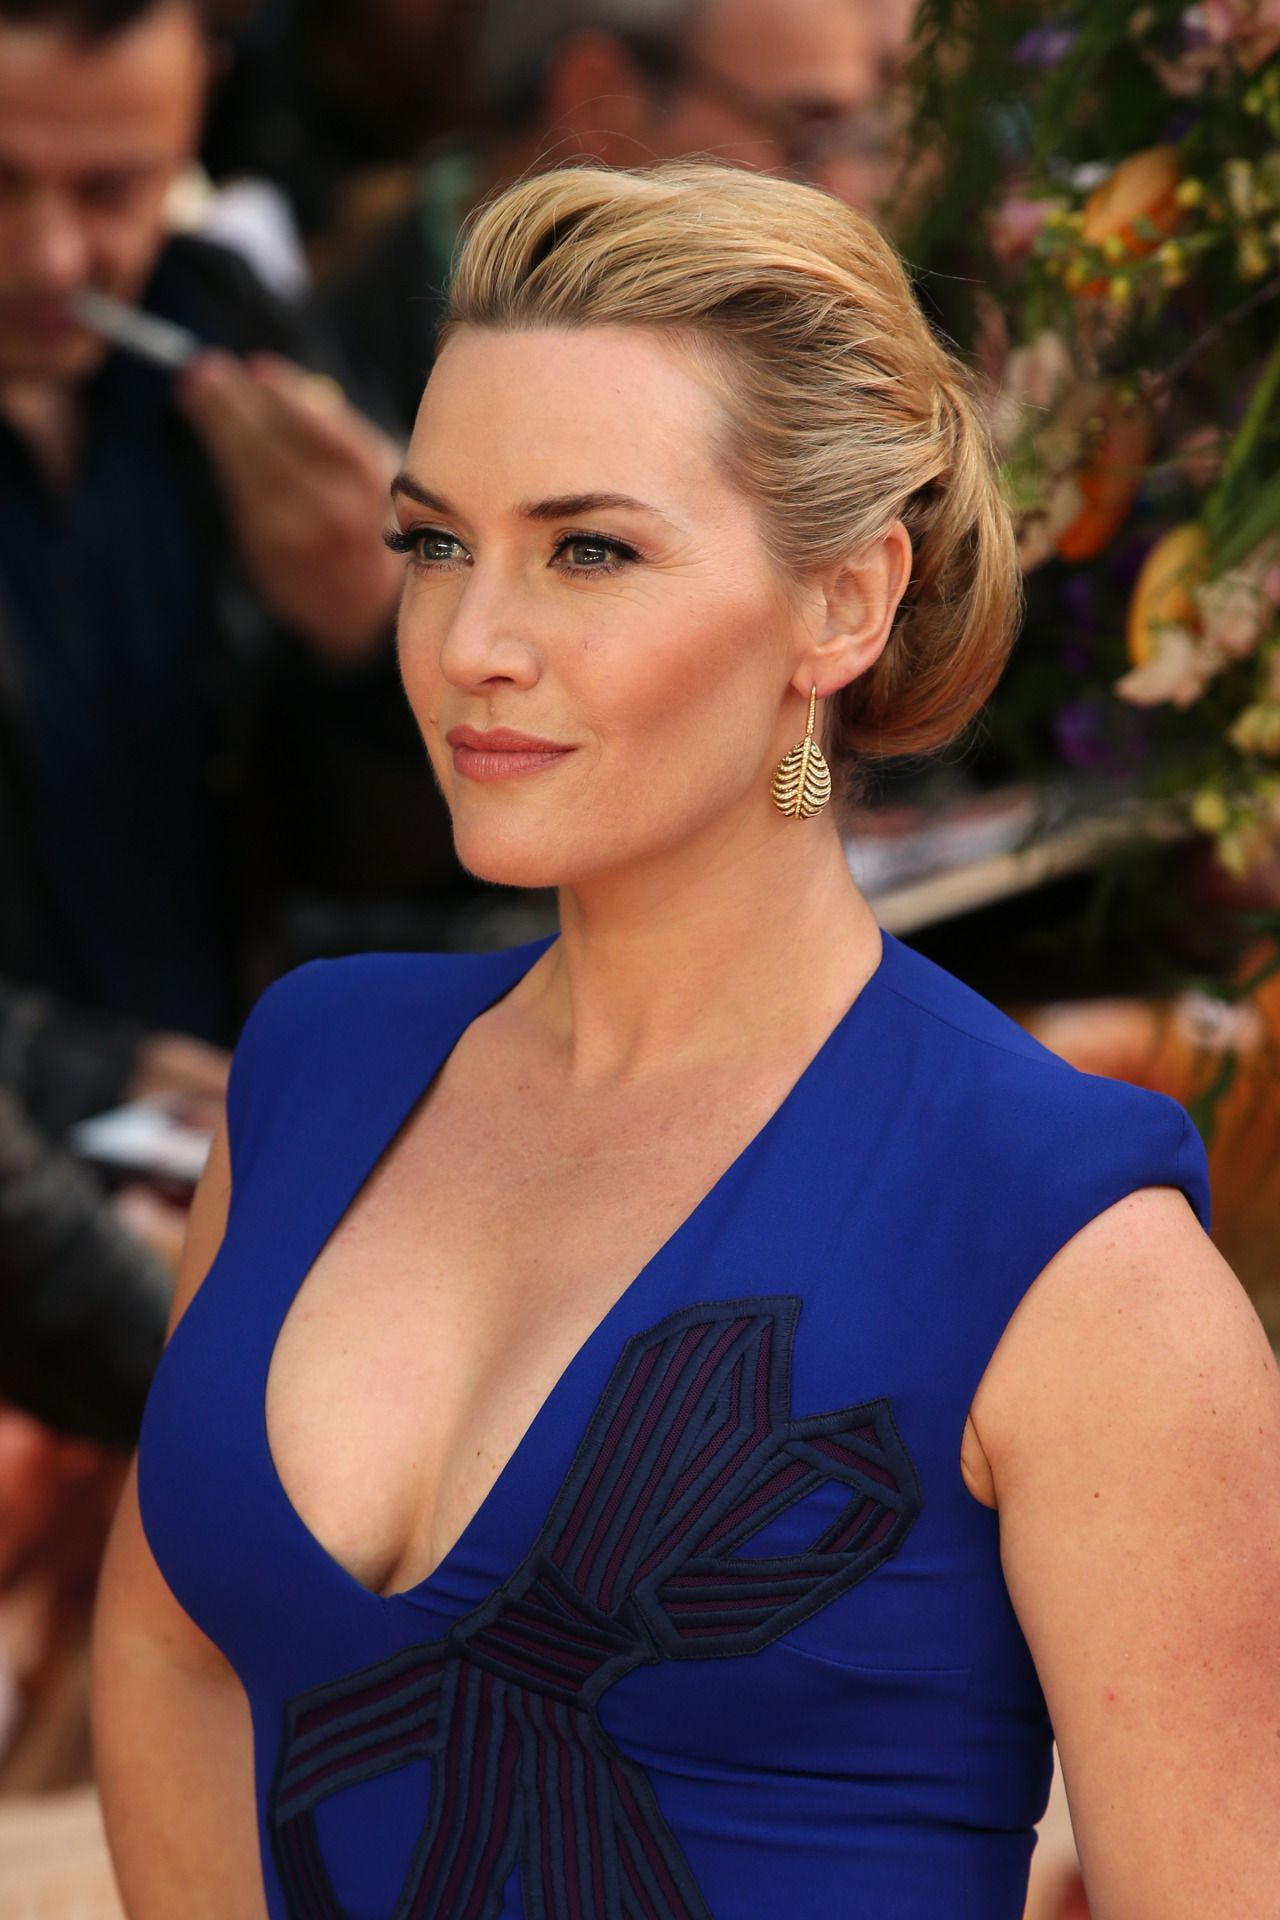 Kate Winslet lovely cleavage in a blue dress at movie premiere | Kate Winslet | Pinterest ...